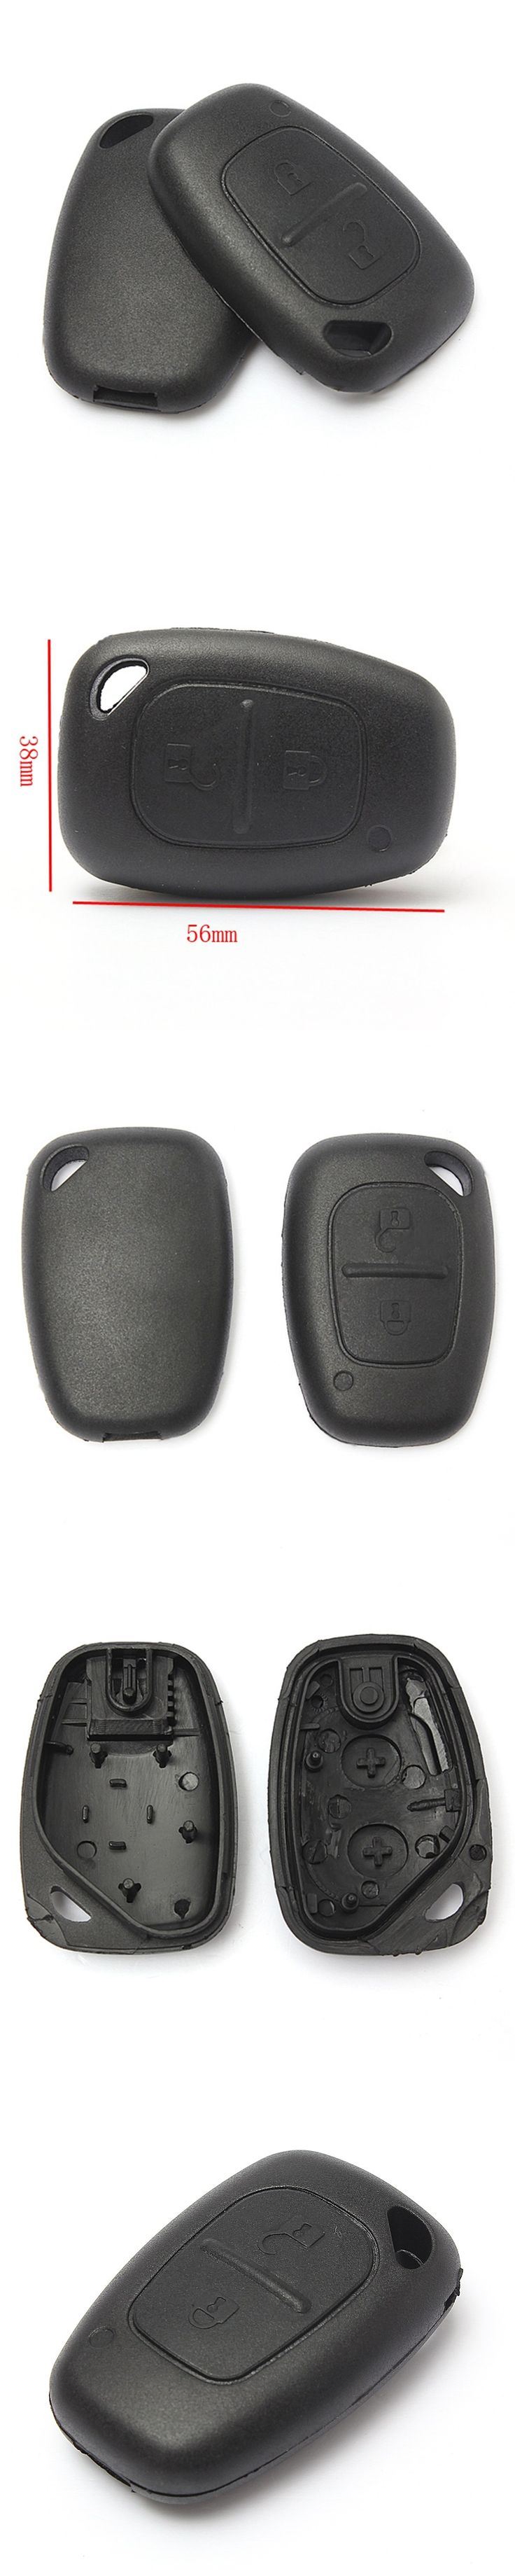 Rreplacements General 2 Buttons Keyless Remote Shell Case Key Fob For Renault Opel for Vauxhall For Nissan Vivaro Movano Traffic